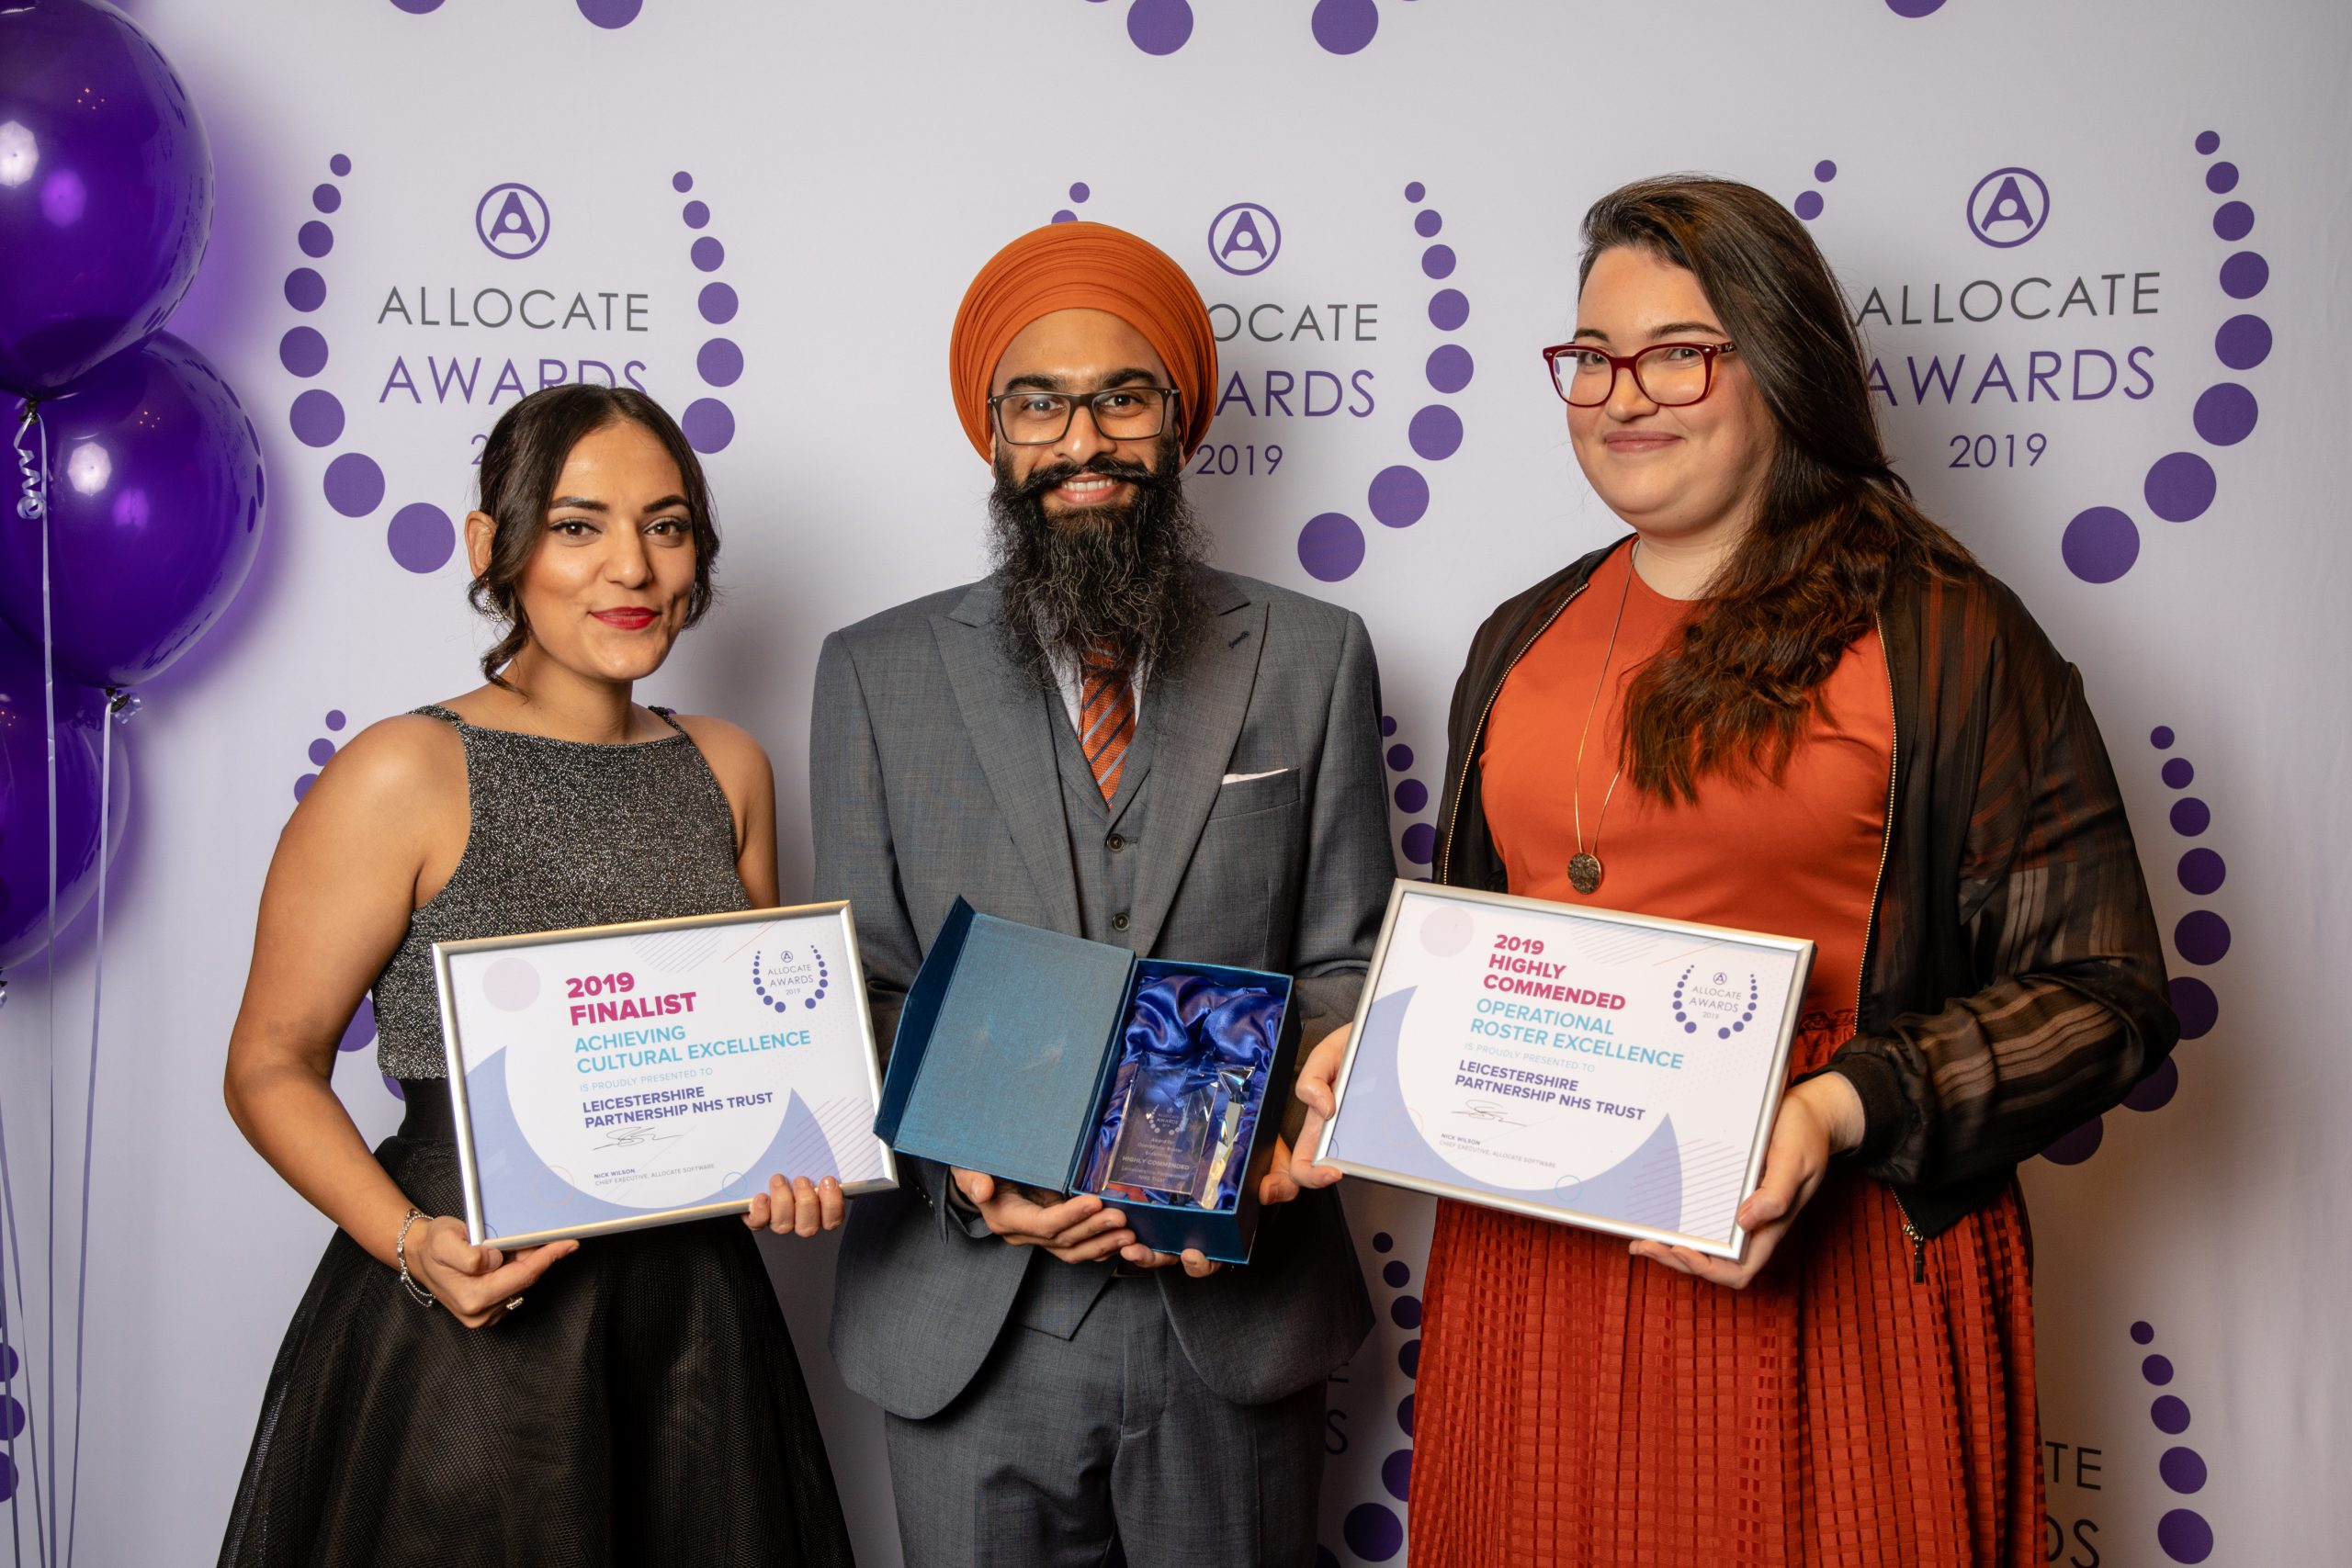 Allocate Awards 2017  – a night to celebrate success and real achievement